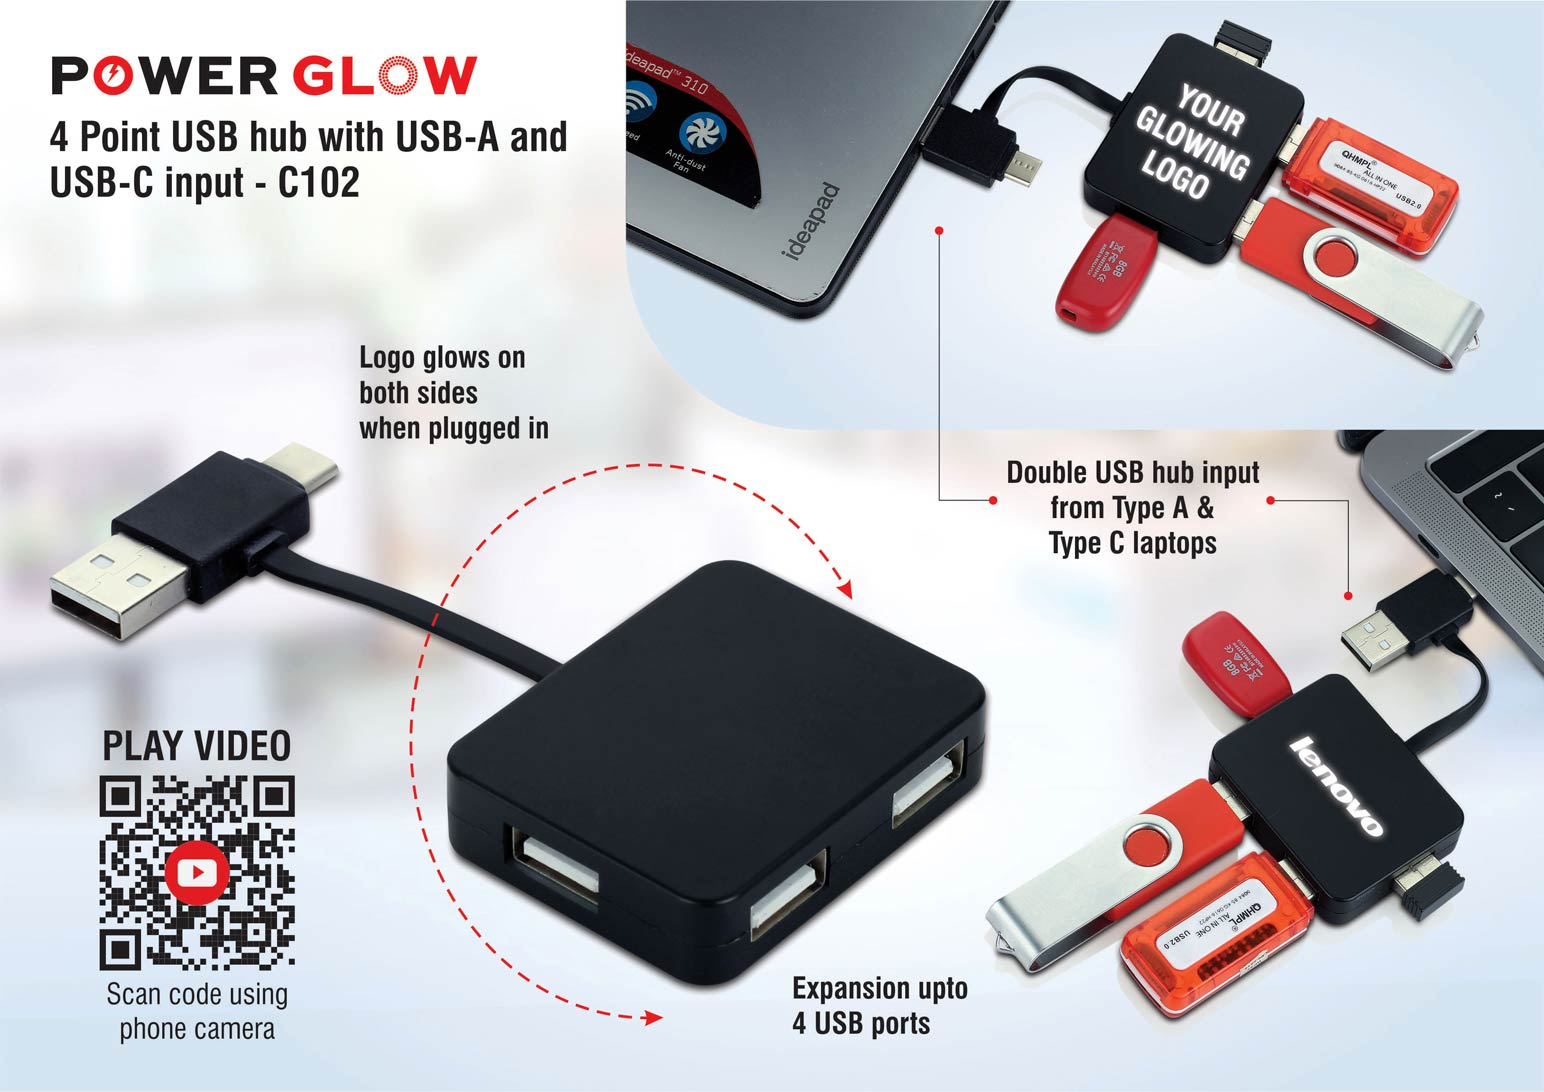 C102 - PowerGlow 4 point USB hub with USB-A and USB-C input | 4 USB ports